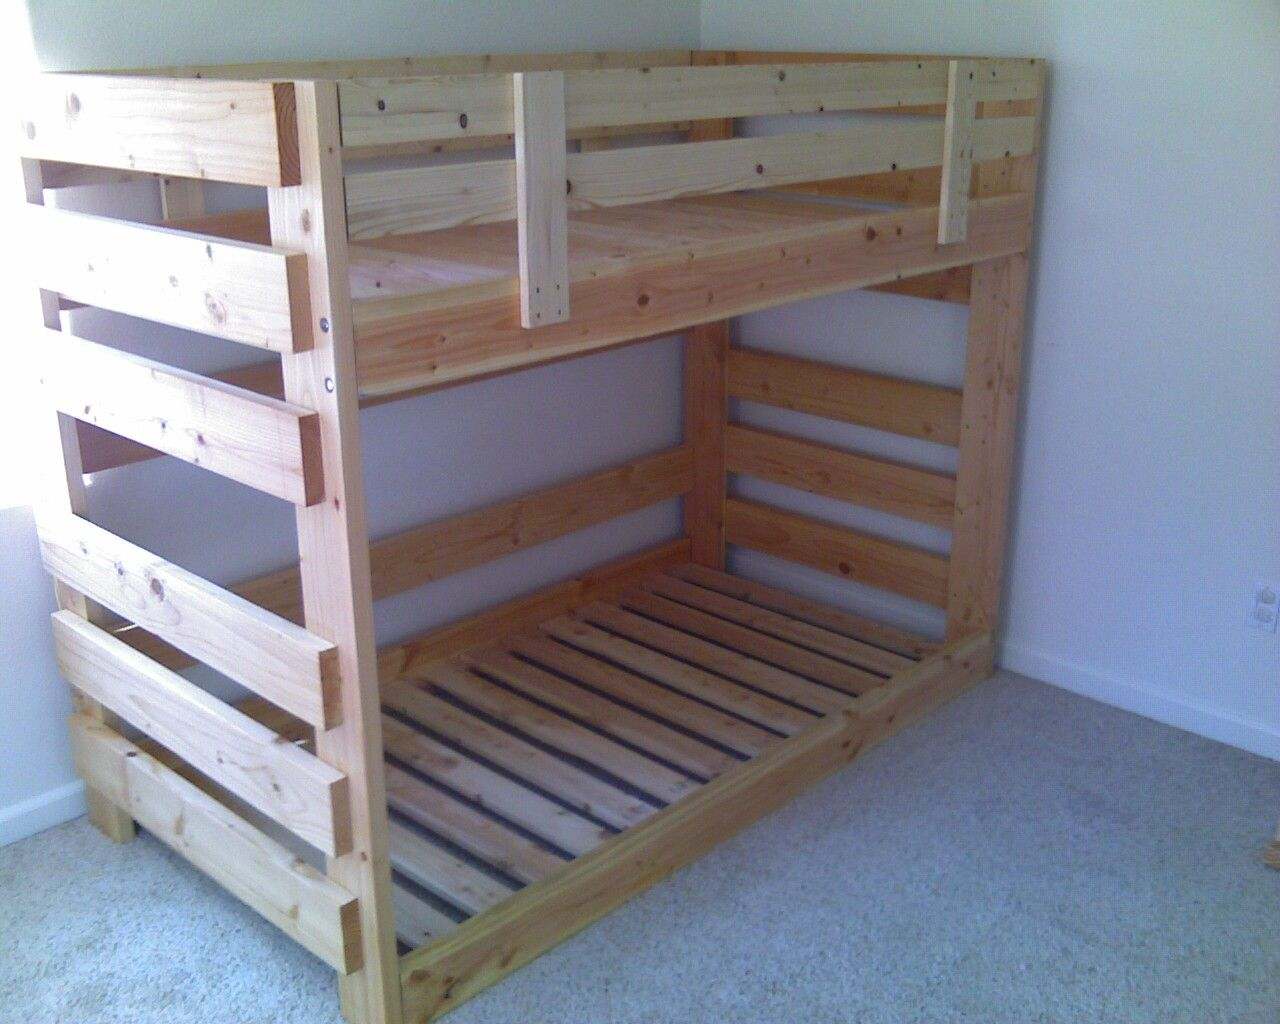 Image detail for -Building A Bunk Bed | Make Bunk Beds for ...